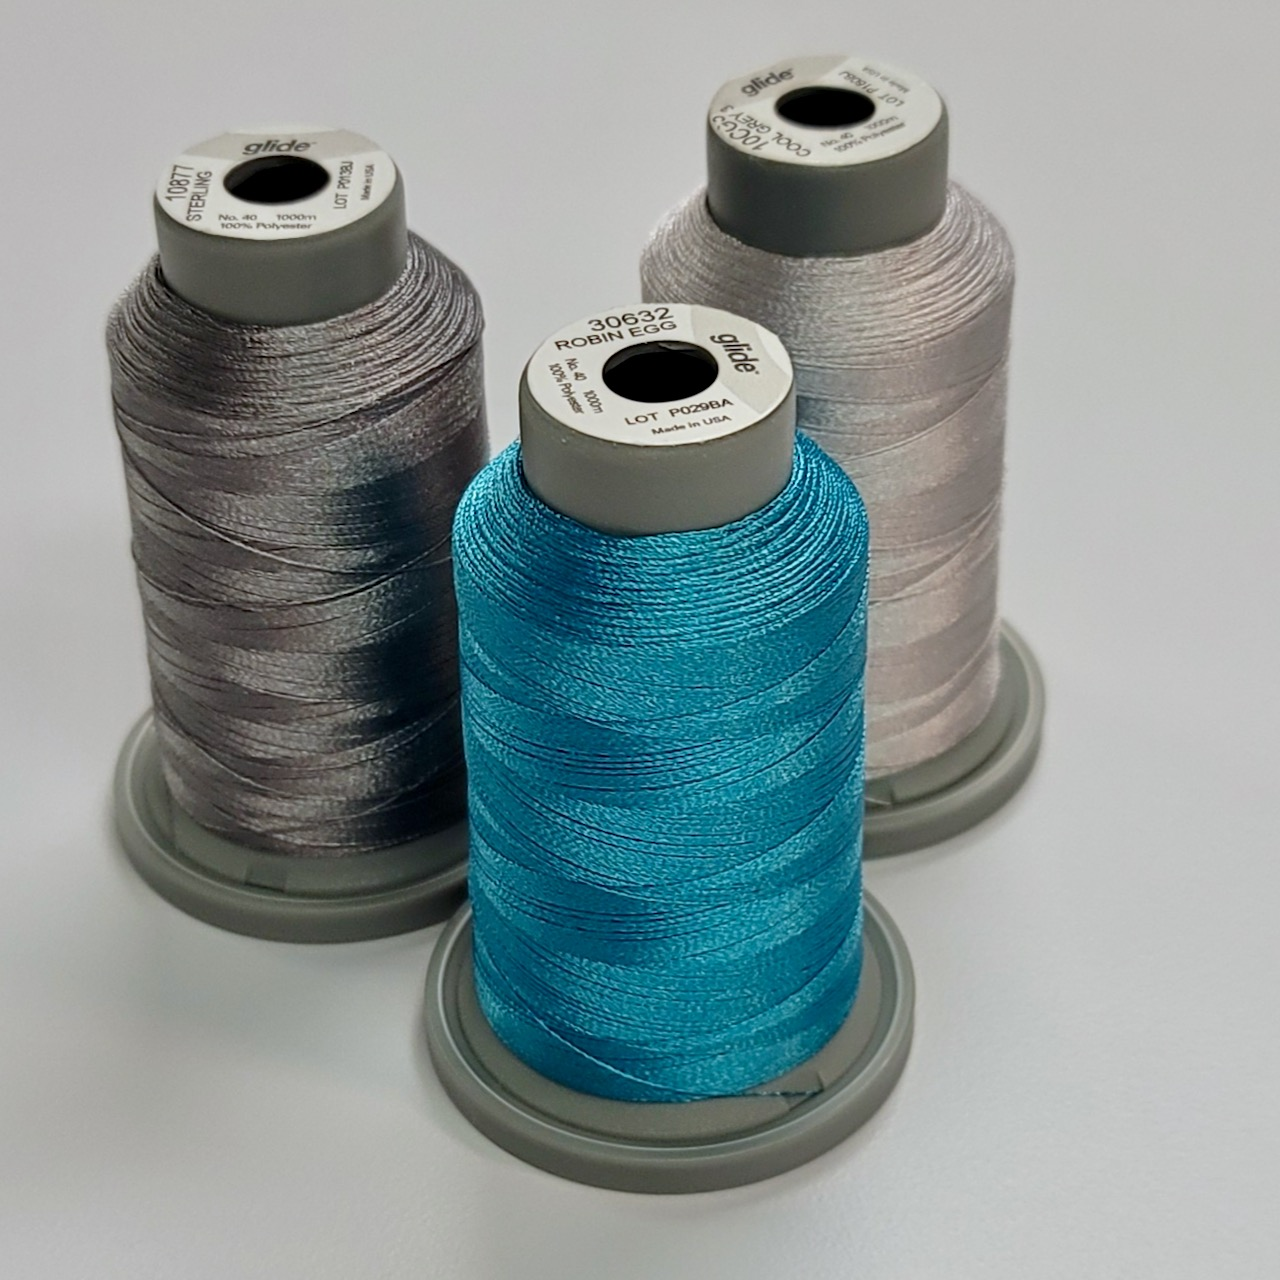 teal and gray thread collection